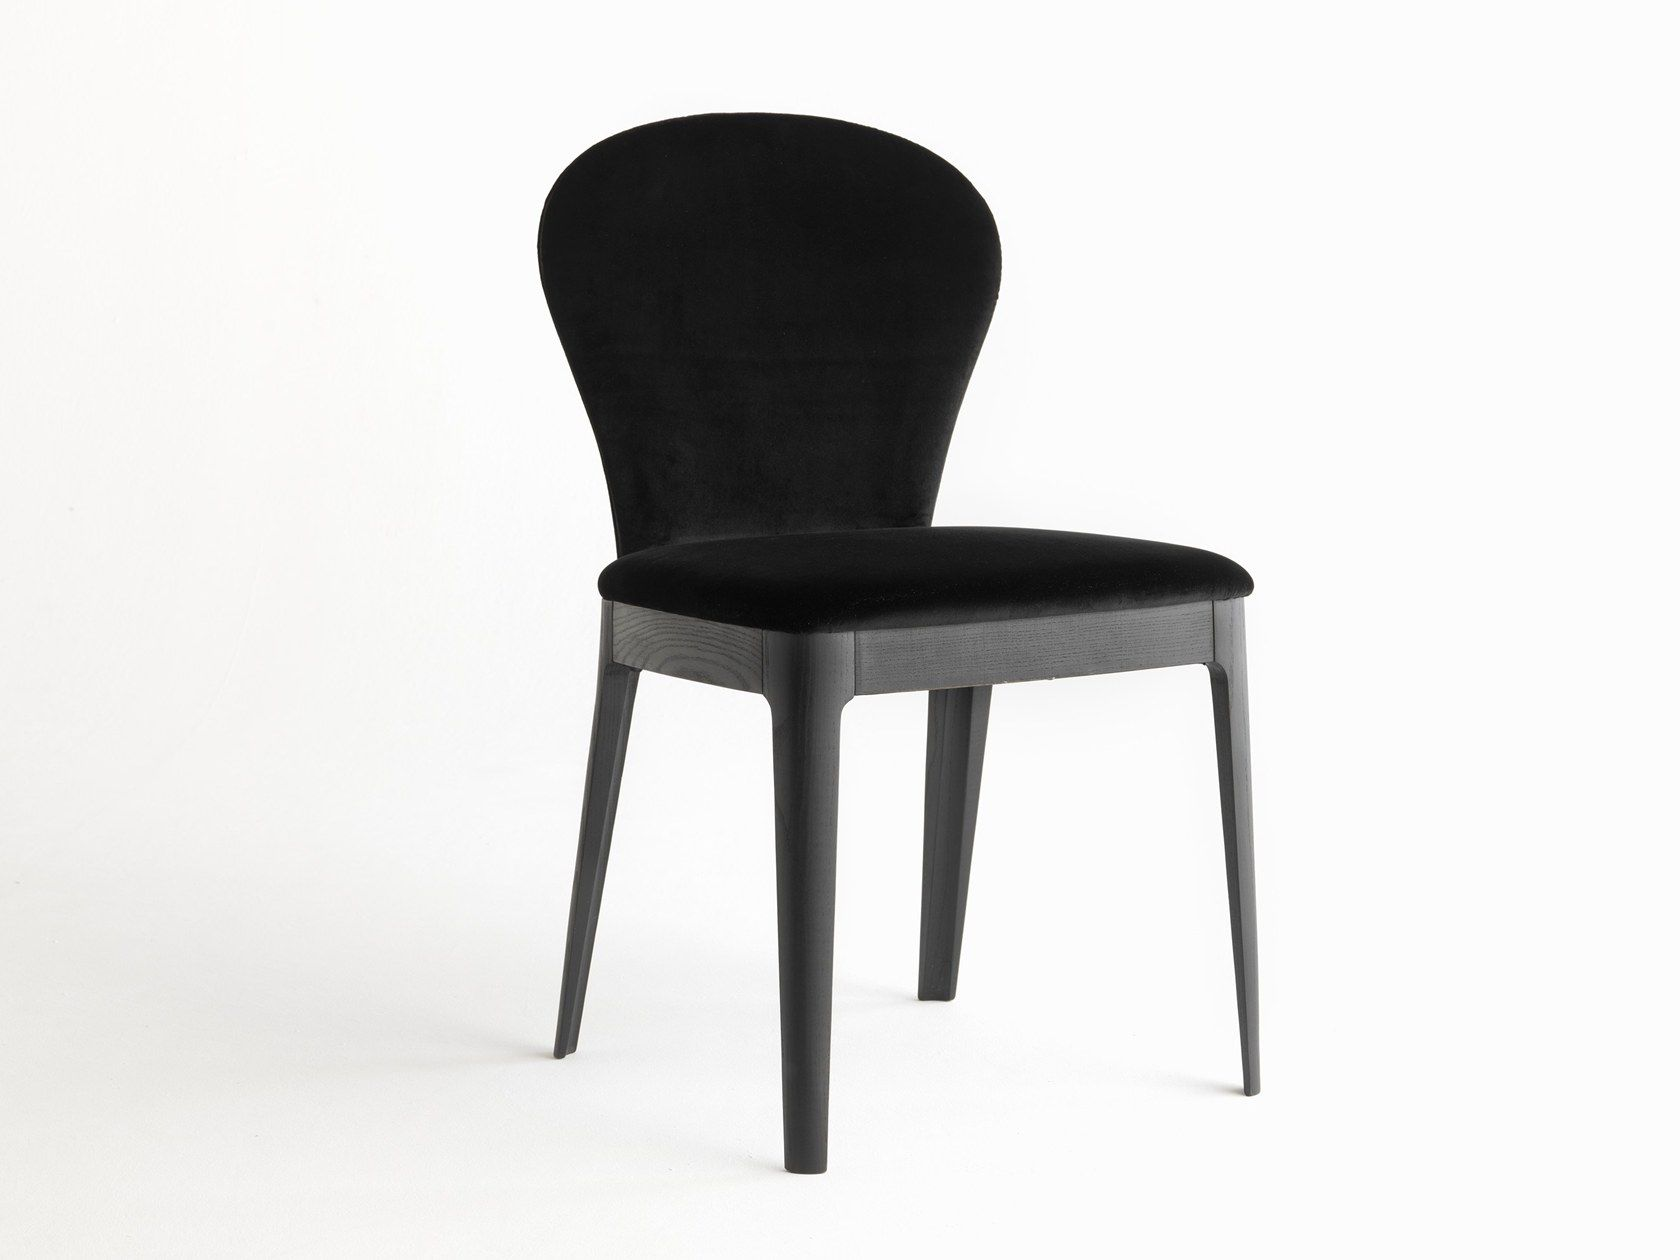 Upholstered Chair Milady By Casamania Horm Design Studio Balutto